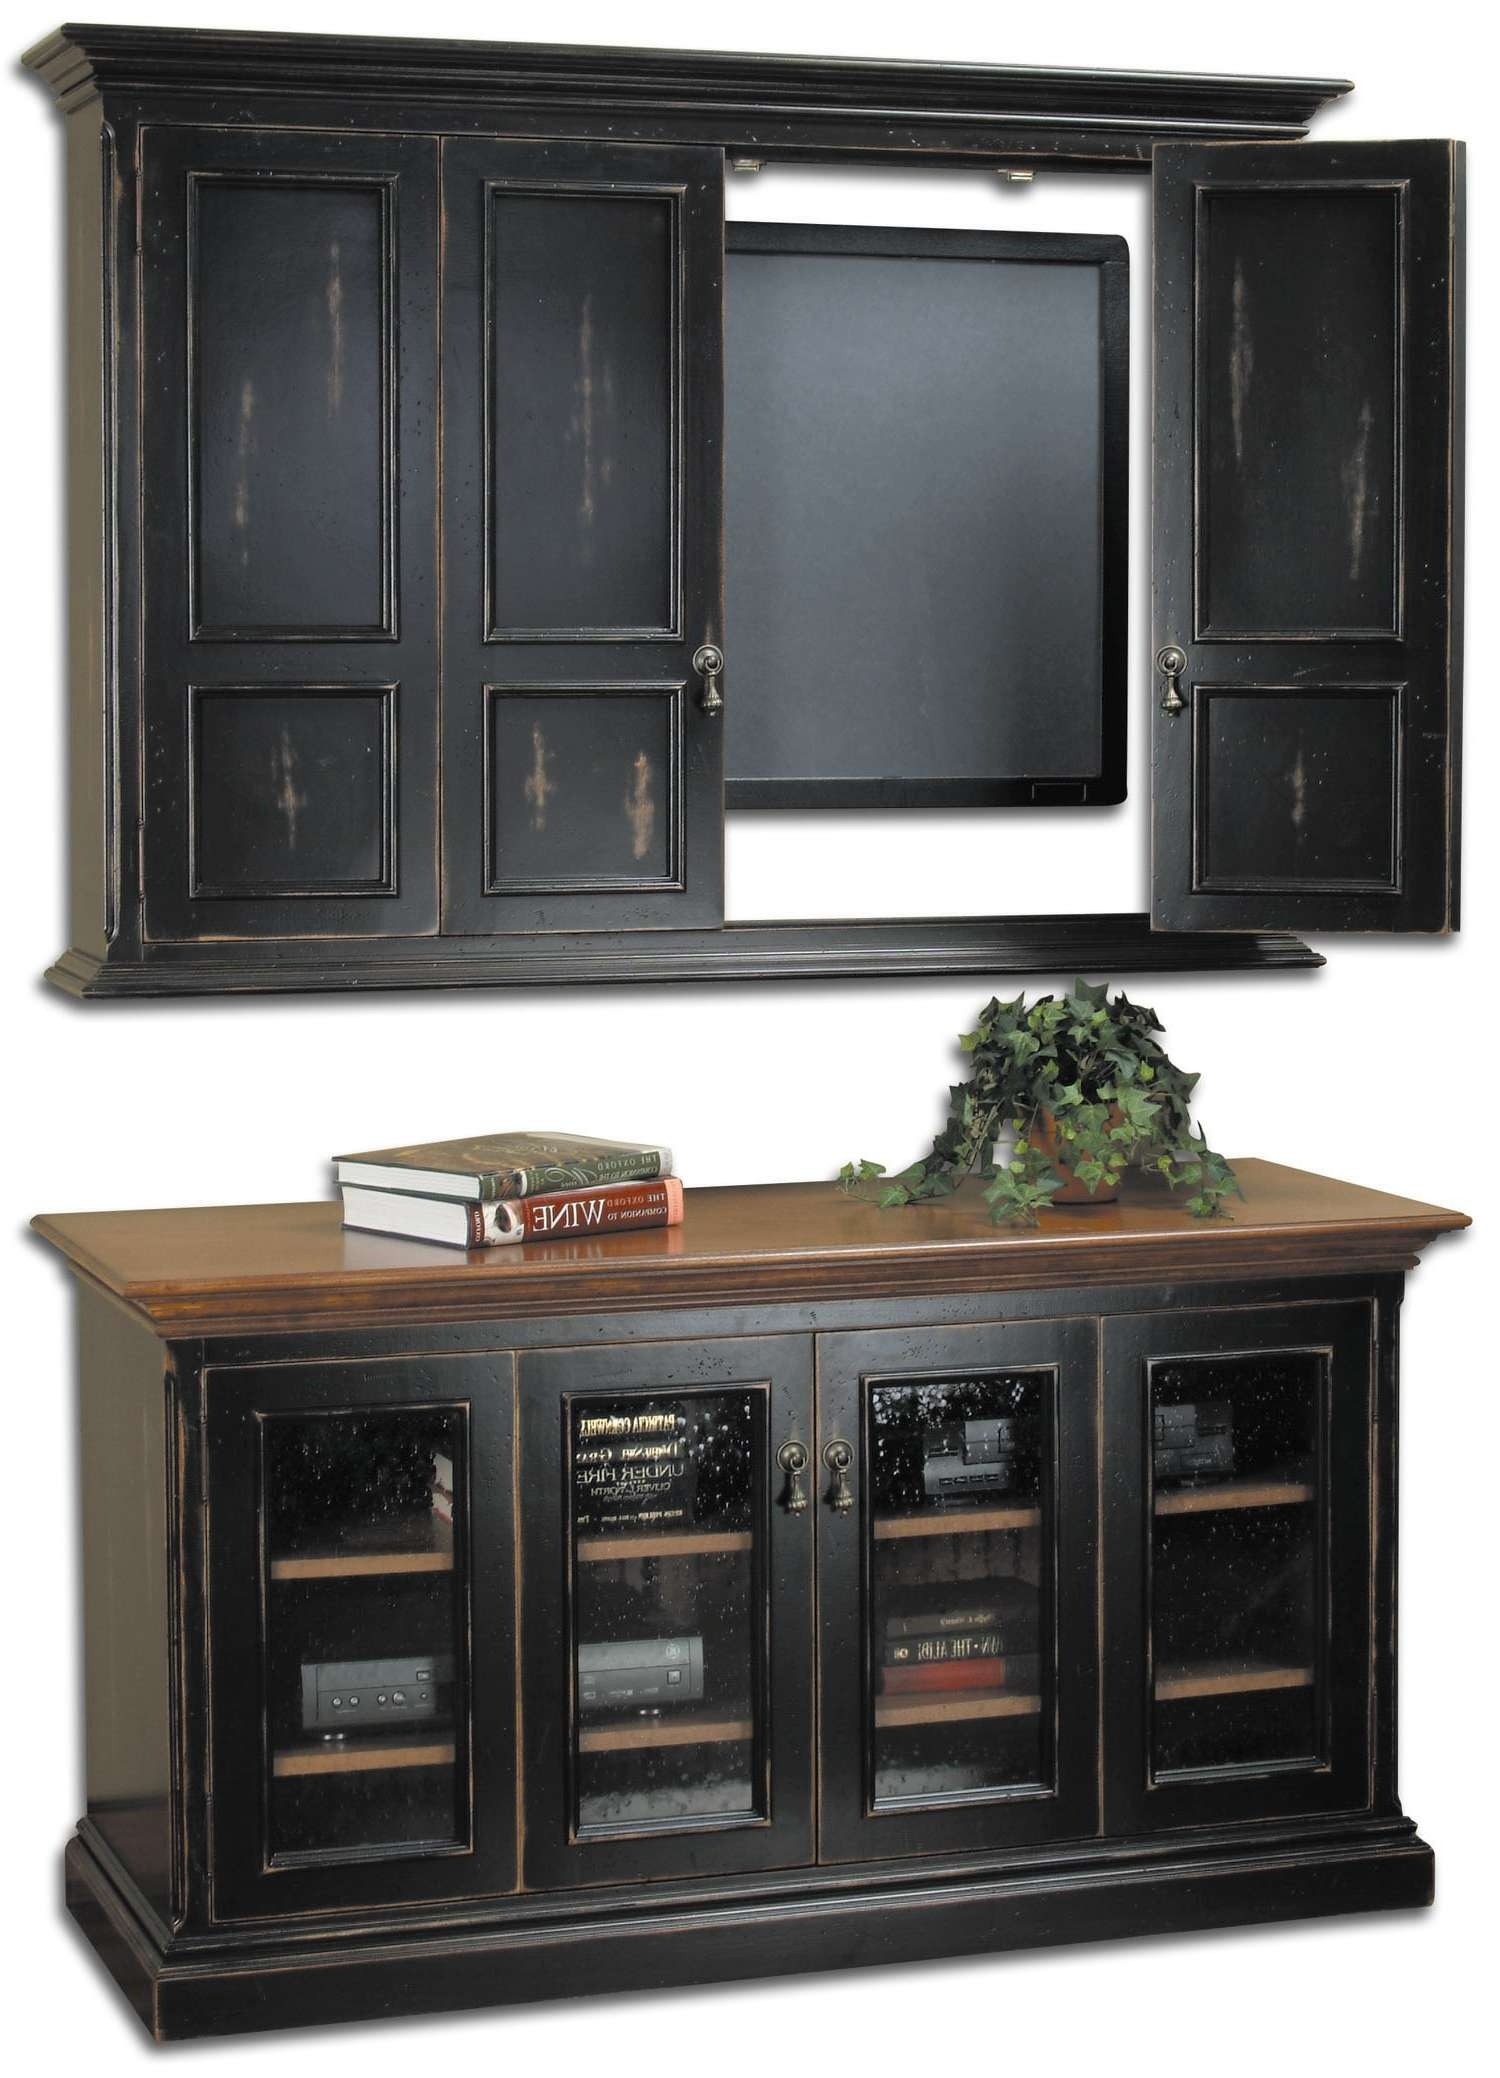 Traditional Entertainment Centers For Wall Mounted Flat Screen Tvs Intended For Traditional Tv Cabinets (View 6 of 20)